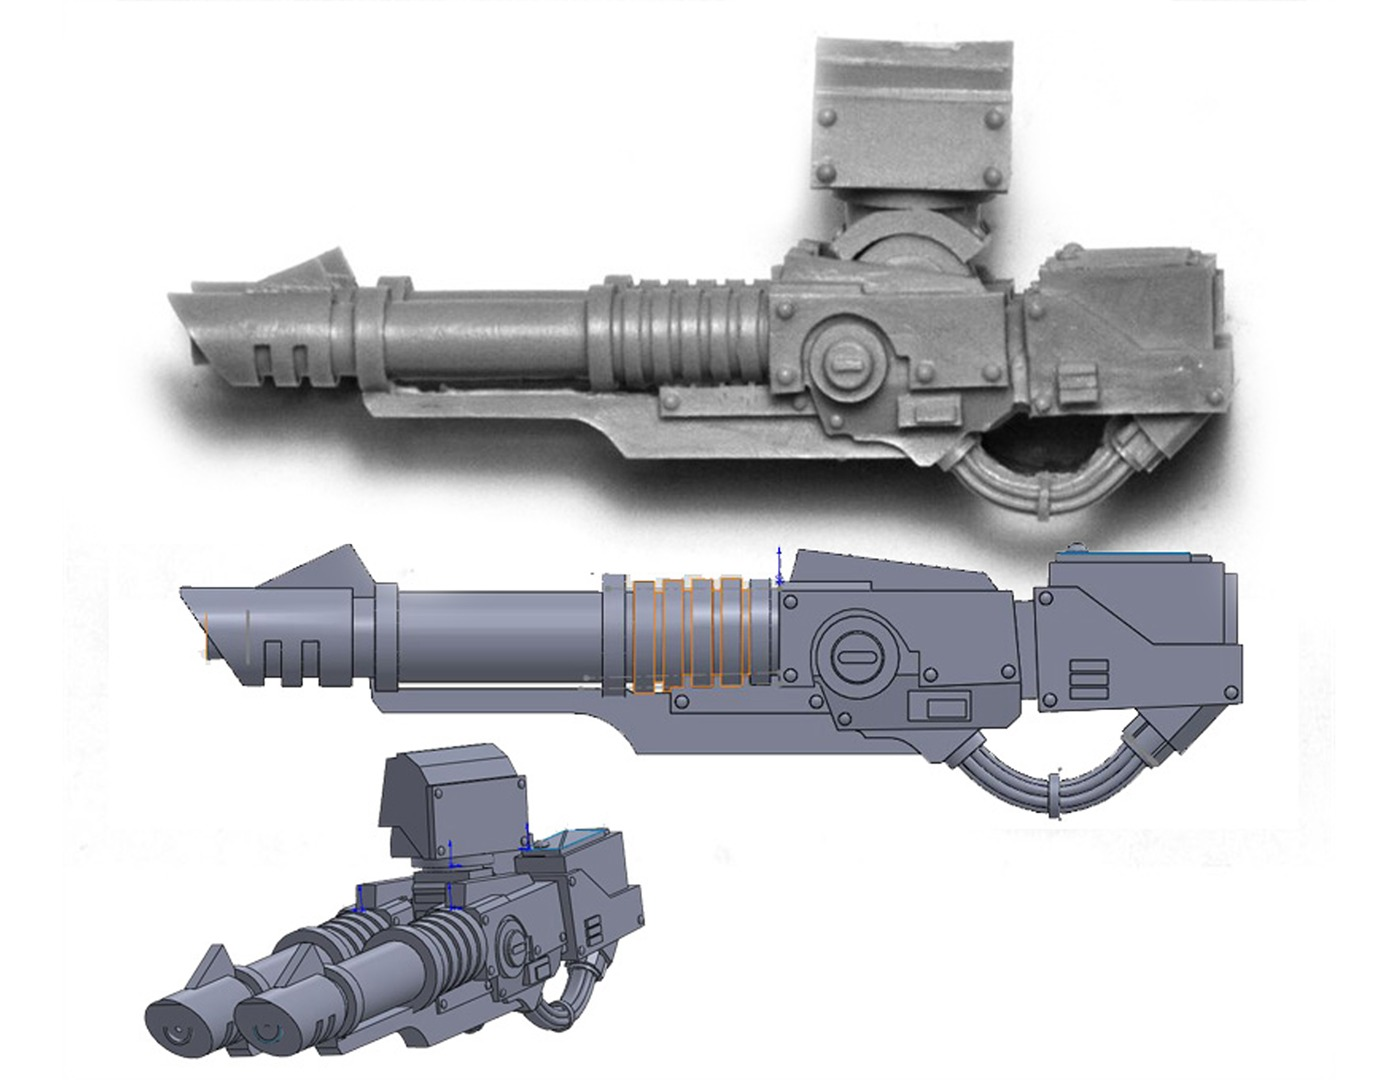 lascannon 3d model solidworks